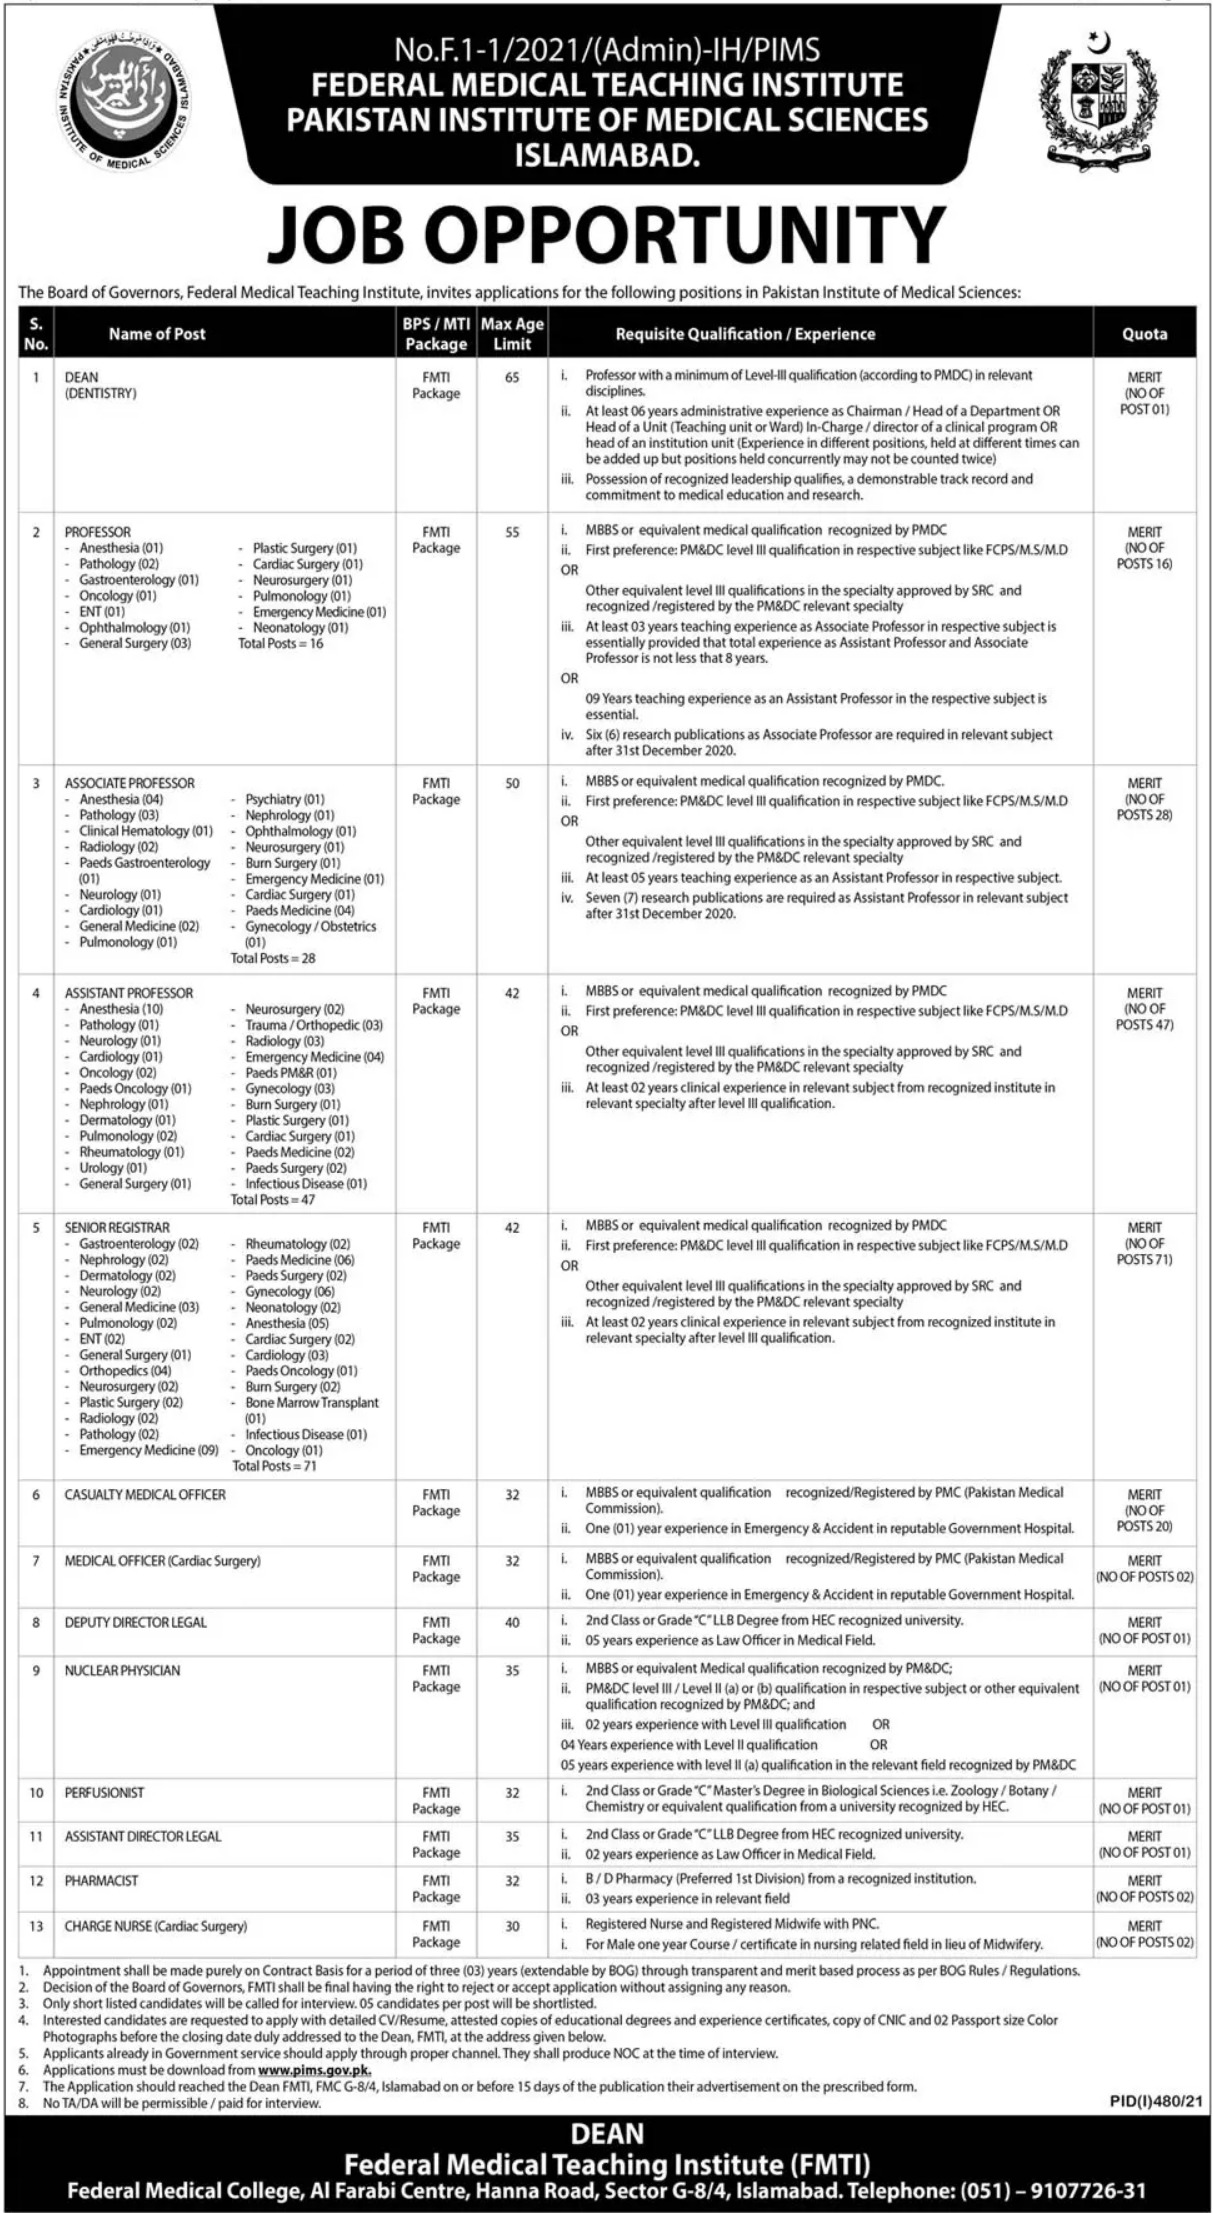 Federal Medical Teaching Institute FMTI Jobs 2021 For Medical Staff In Islamabad